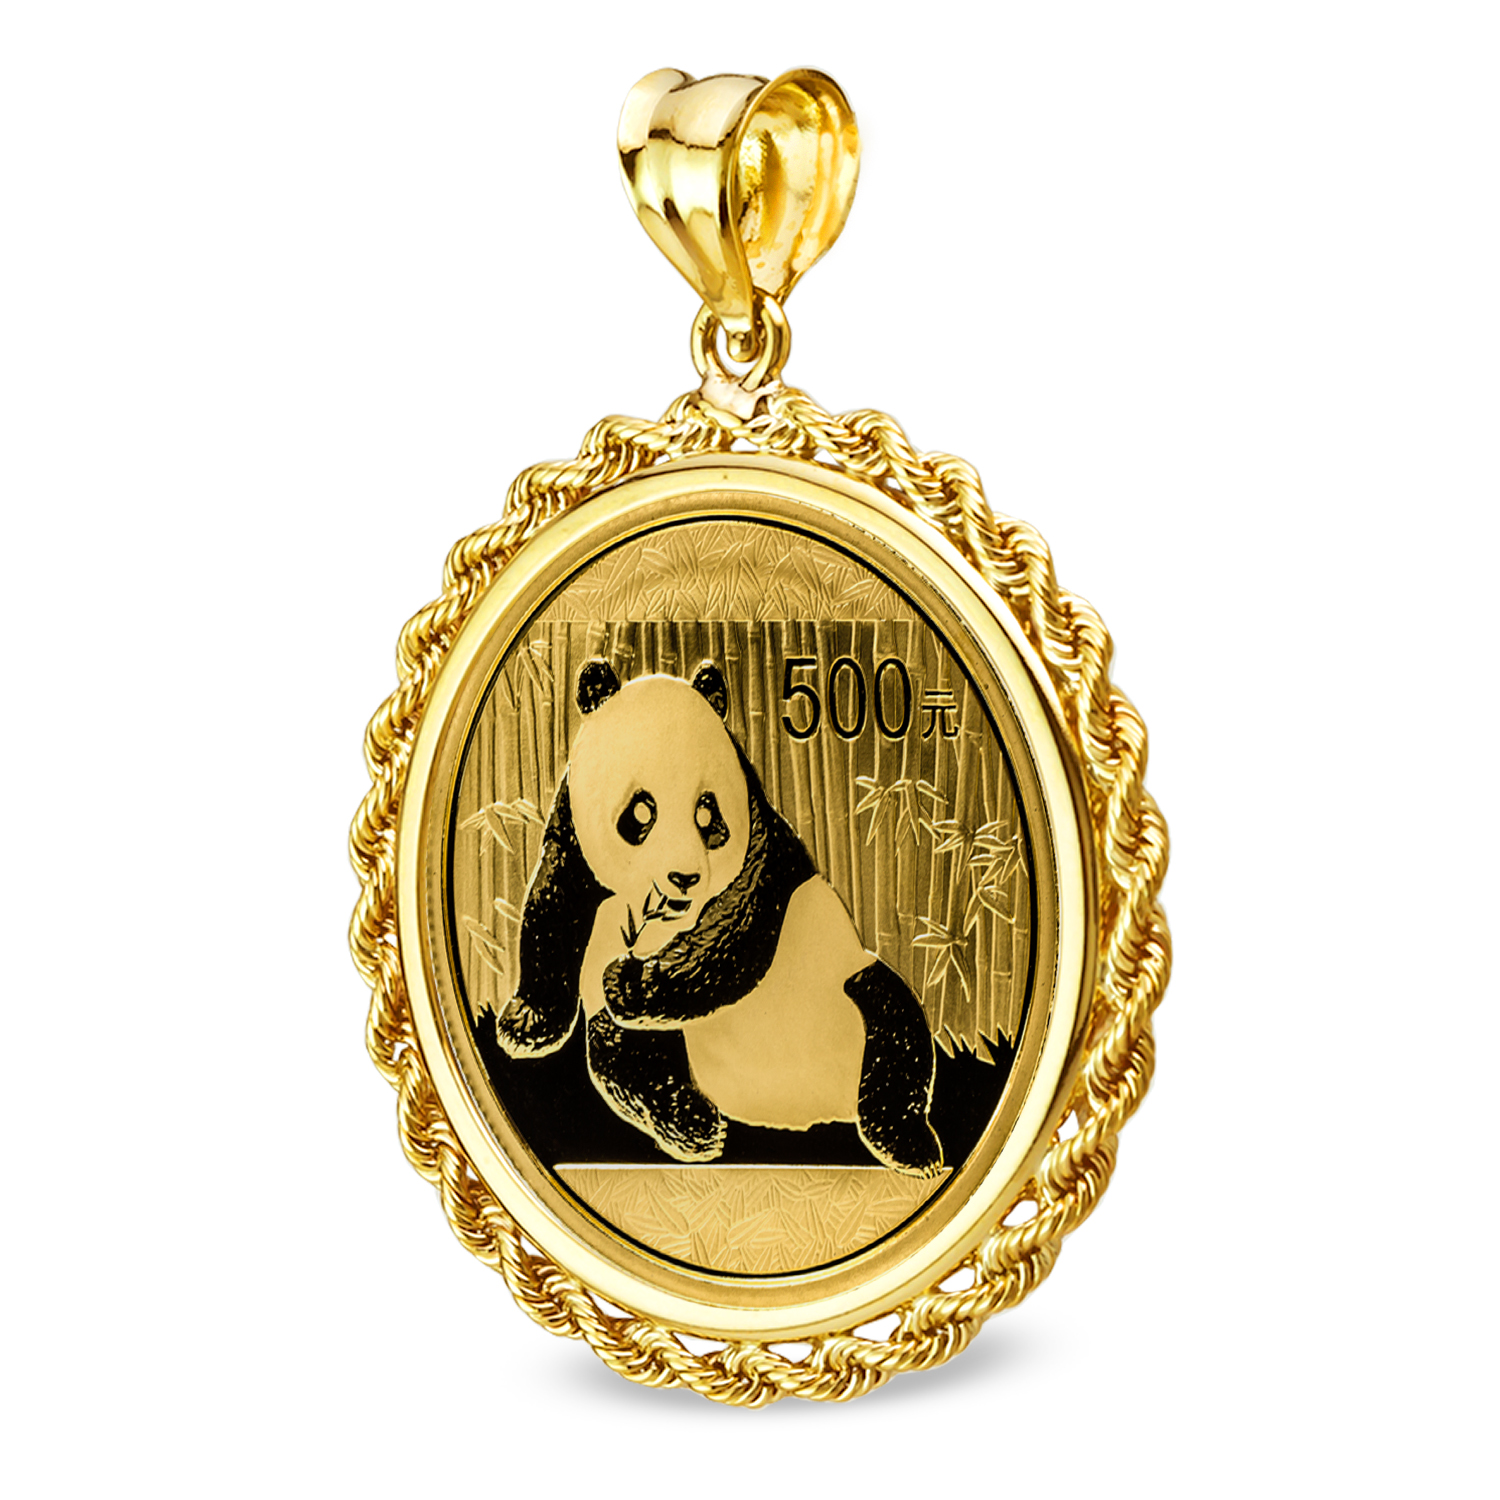 2015 1 oz Gold Panda Pendant (Rope-Prong Bezel)